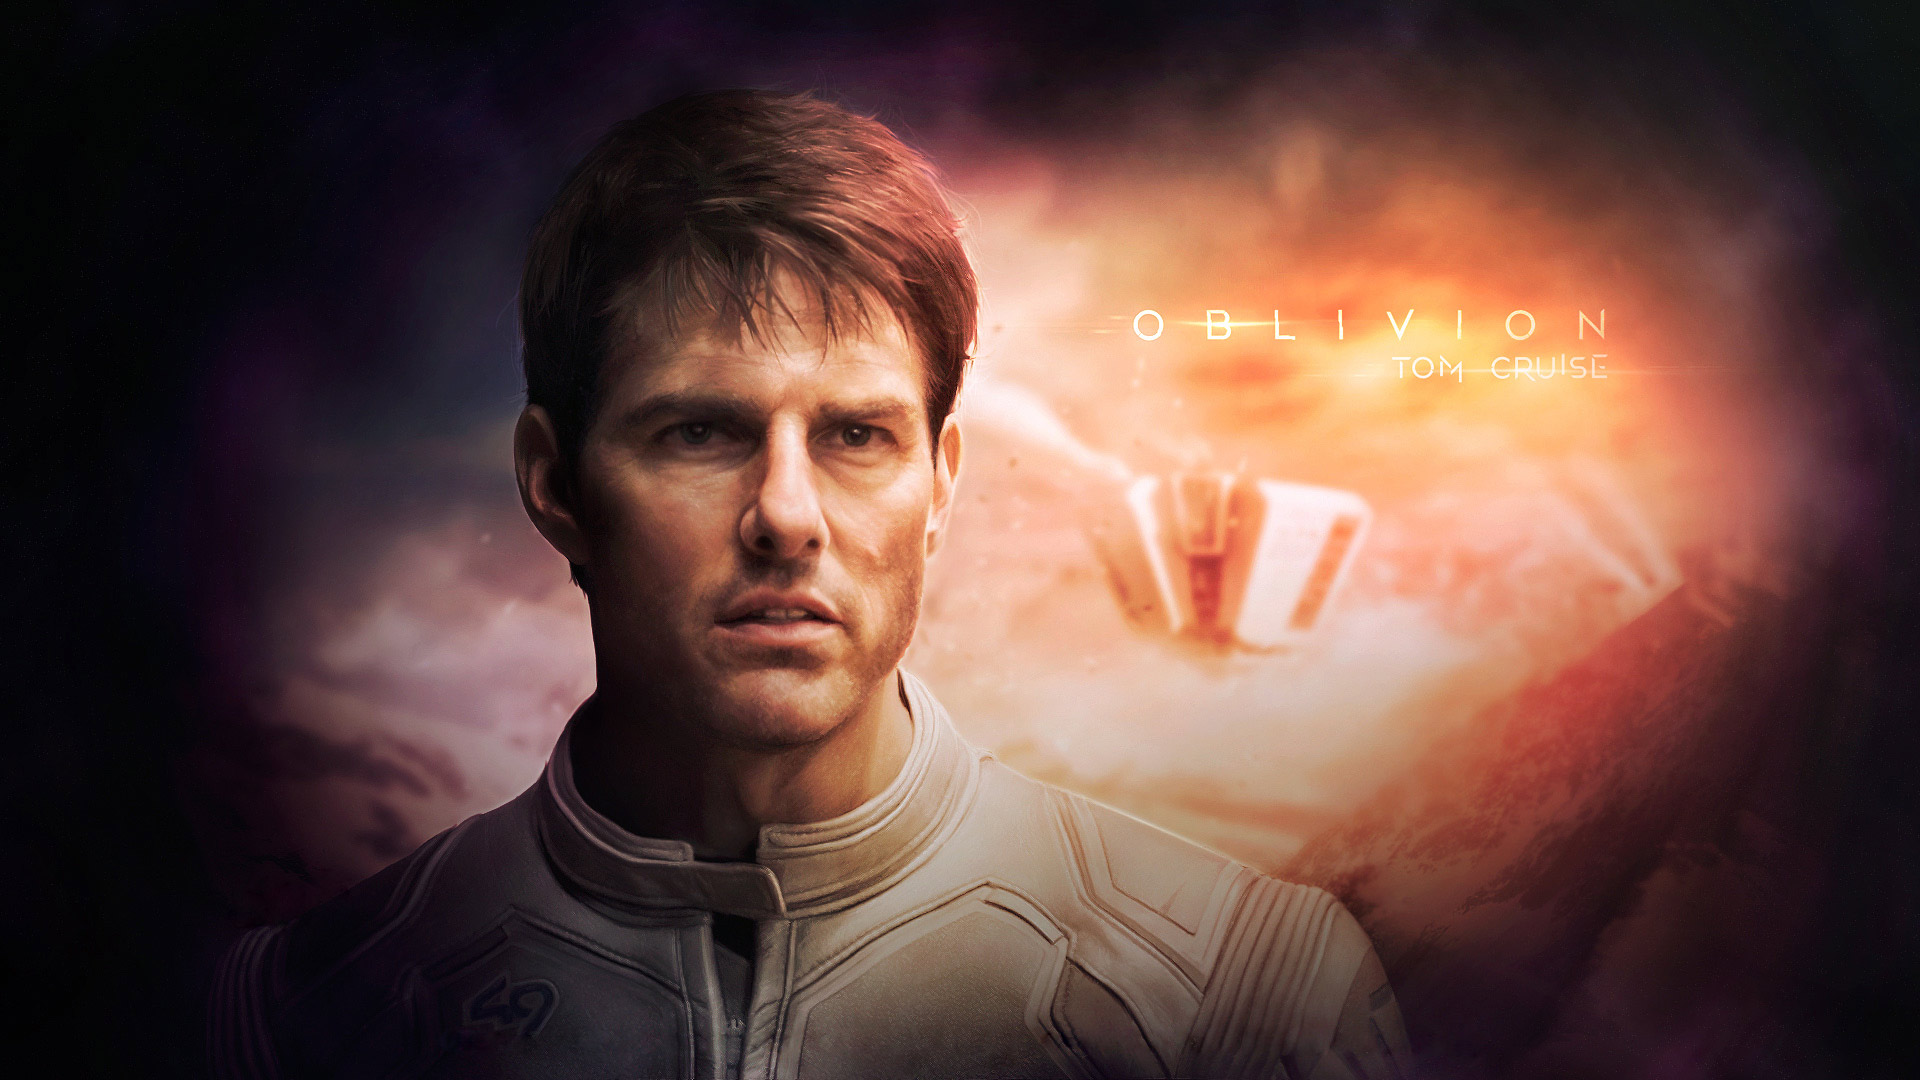 Tom Cruise Oblivion Movie wallpaper Gallery 1920x1080